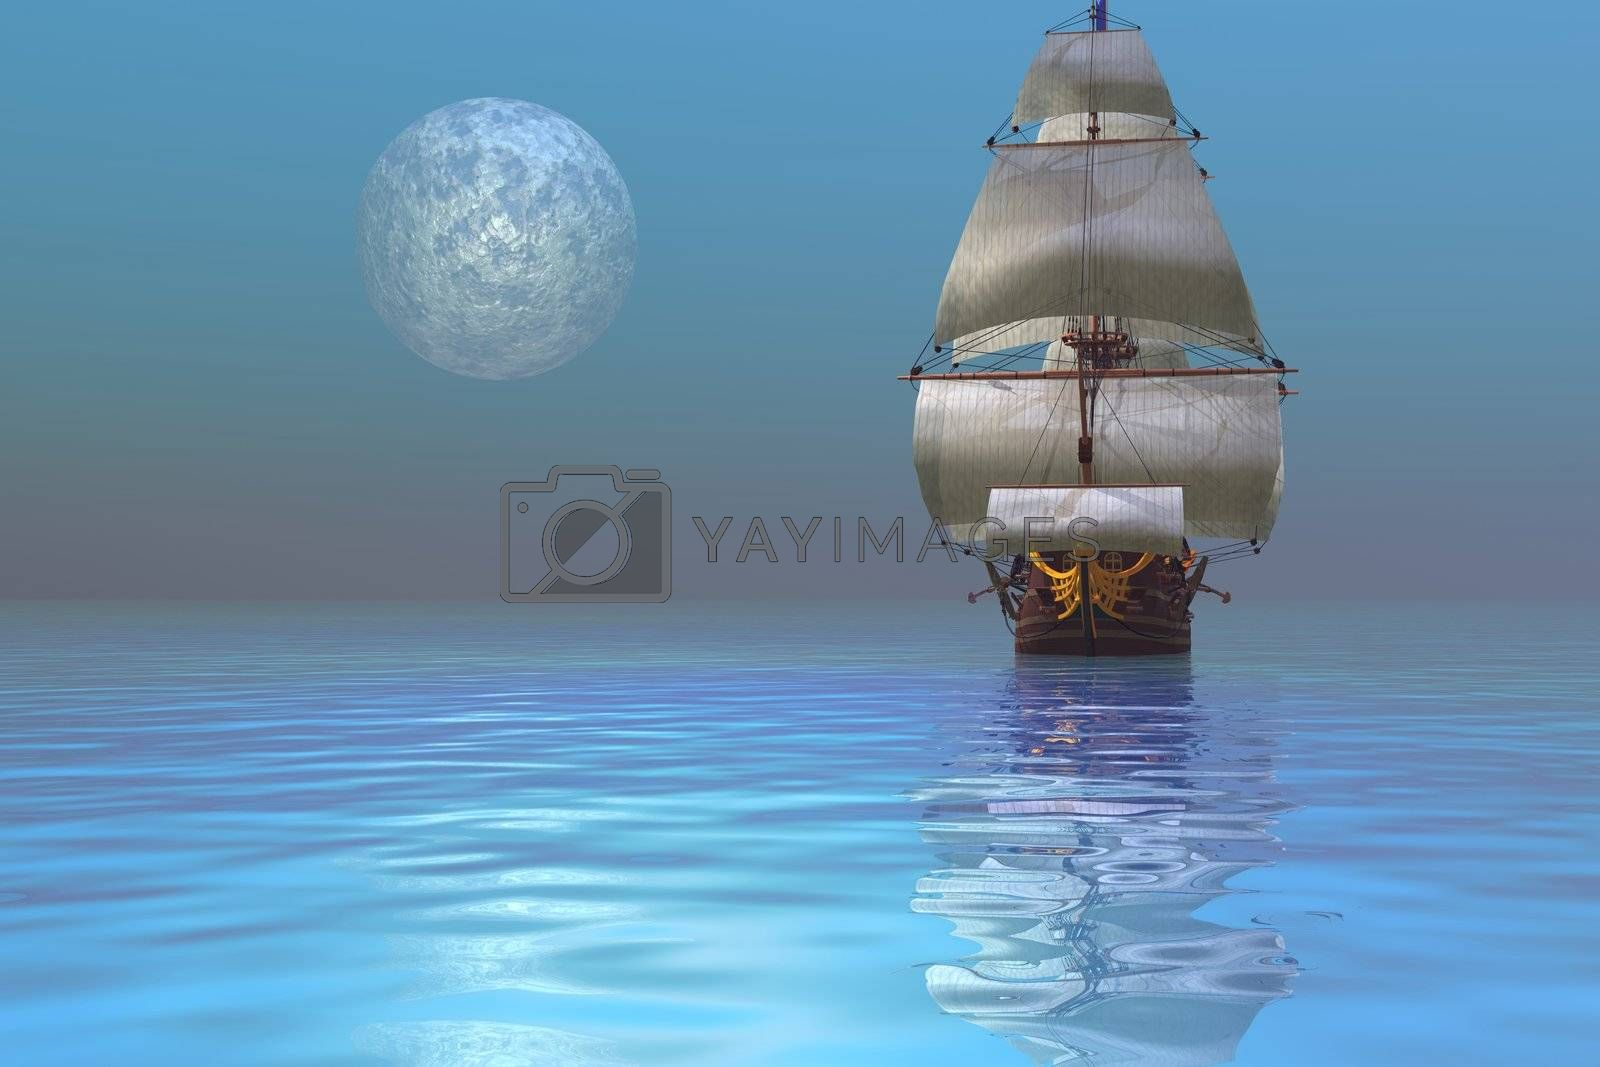 Fantasy seascape of a ship and the moon.